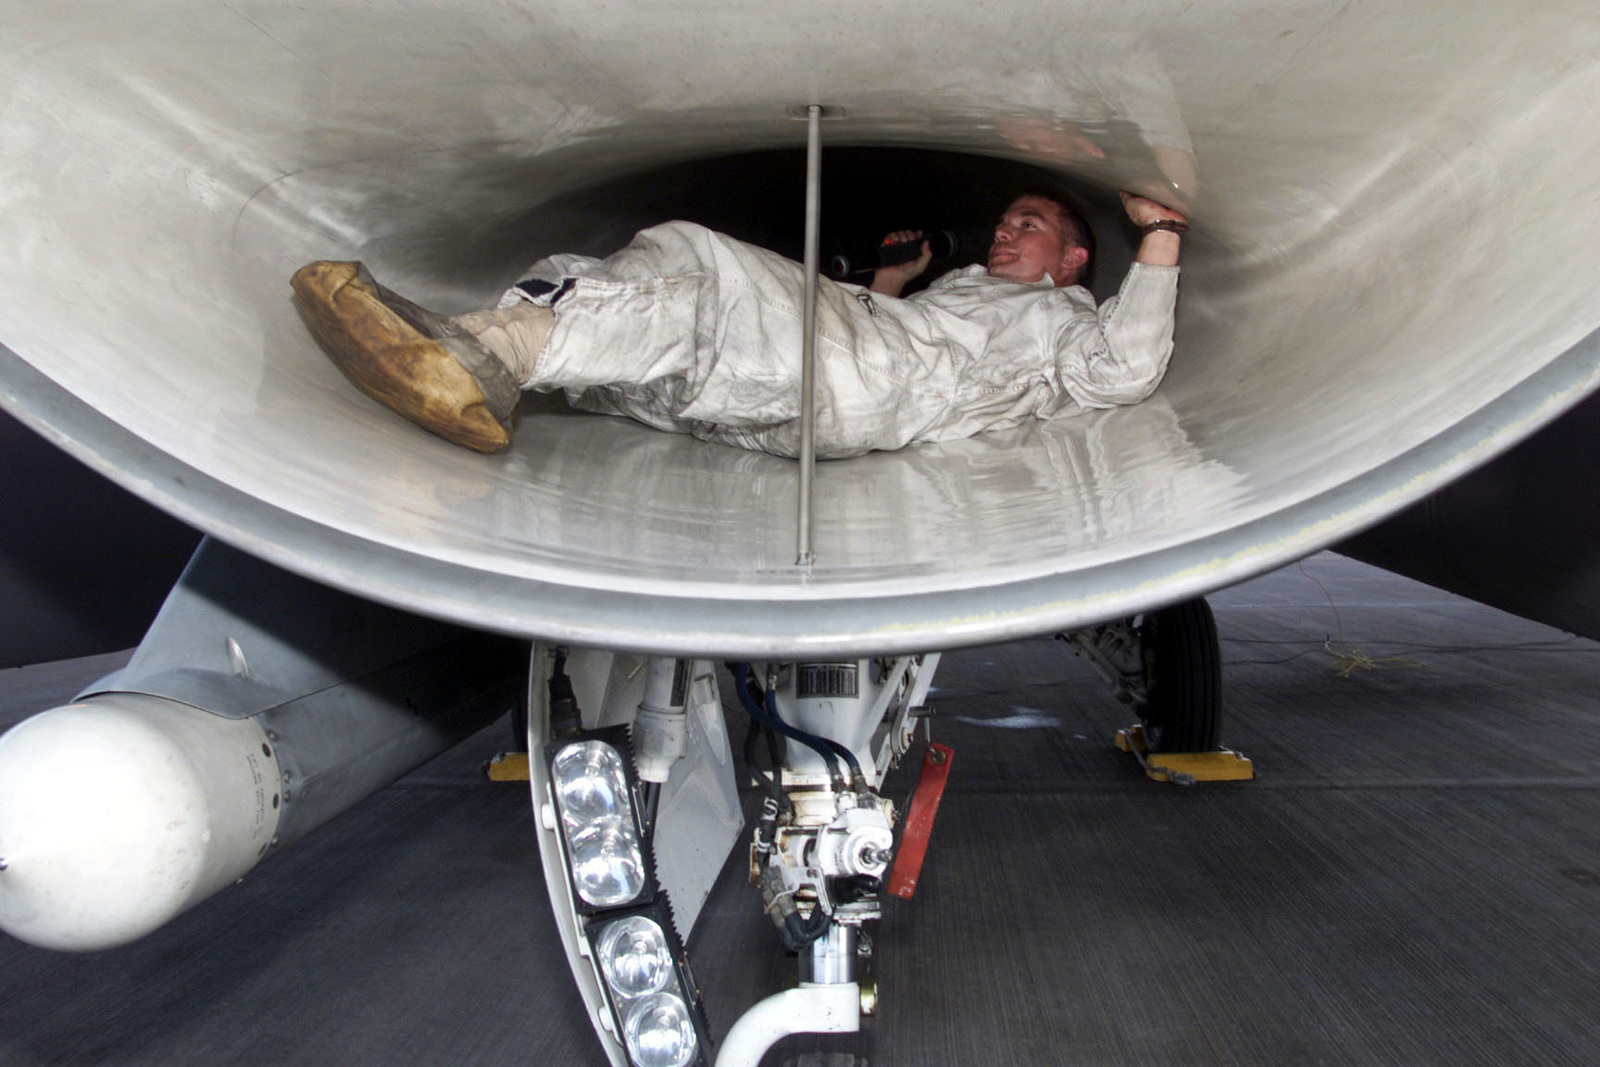 US Air Force SENIOR AIRMAN Raymond Diaz-Rios, Crew CHIEF, 22nd Expeditionary Fighter Squadron (EFS), Spangdahlem Air Base, Germany, inspects the engine of an F-16 Fighting Falcon aircraft as part of his post-flight procedures at Prince Sultan Air Base, Saudi Arabia. The 22nd EFS is part of the coalition force here to support Operation SOUTHERN WATCH, a military effort to enforce the no-fly and no-drive zone in Southern Iraq